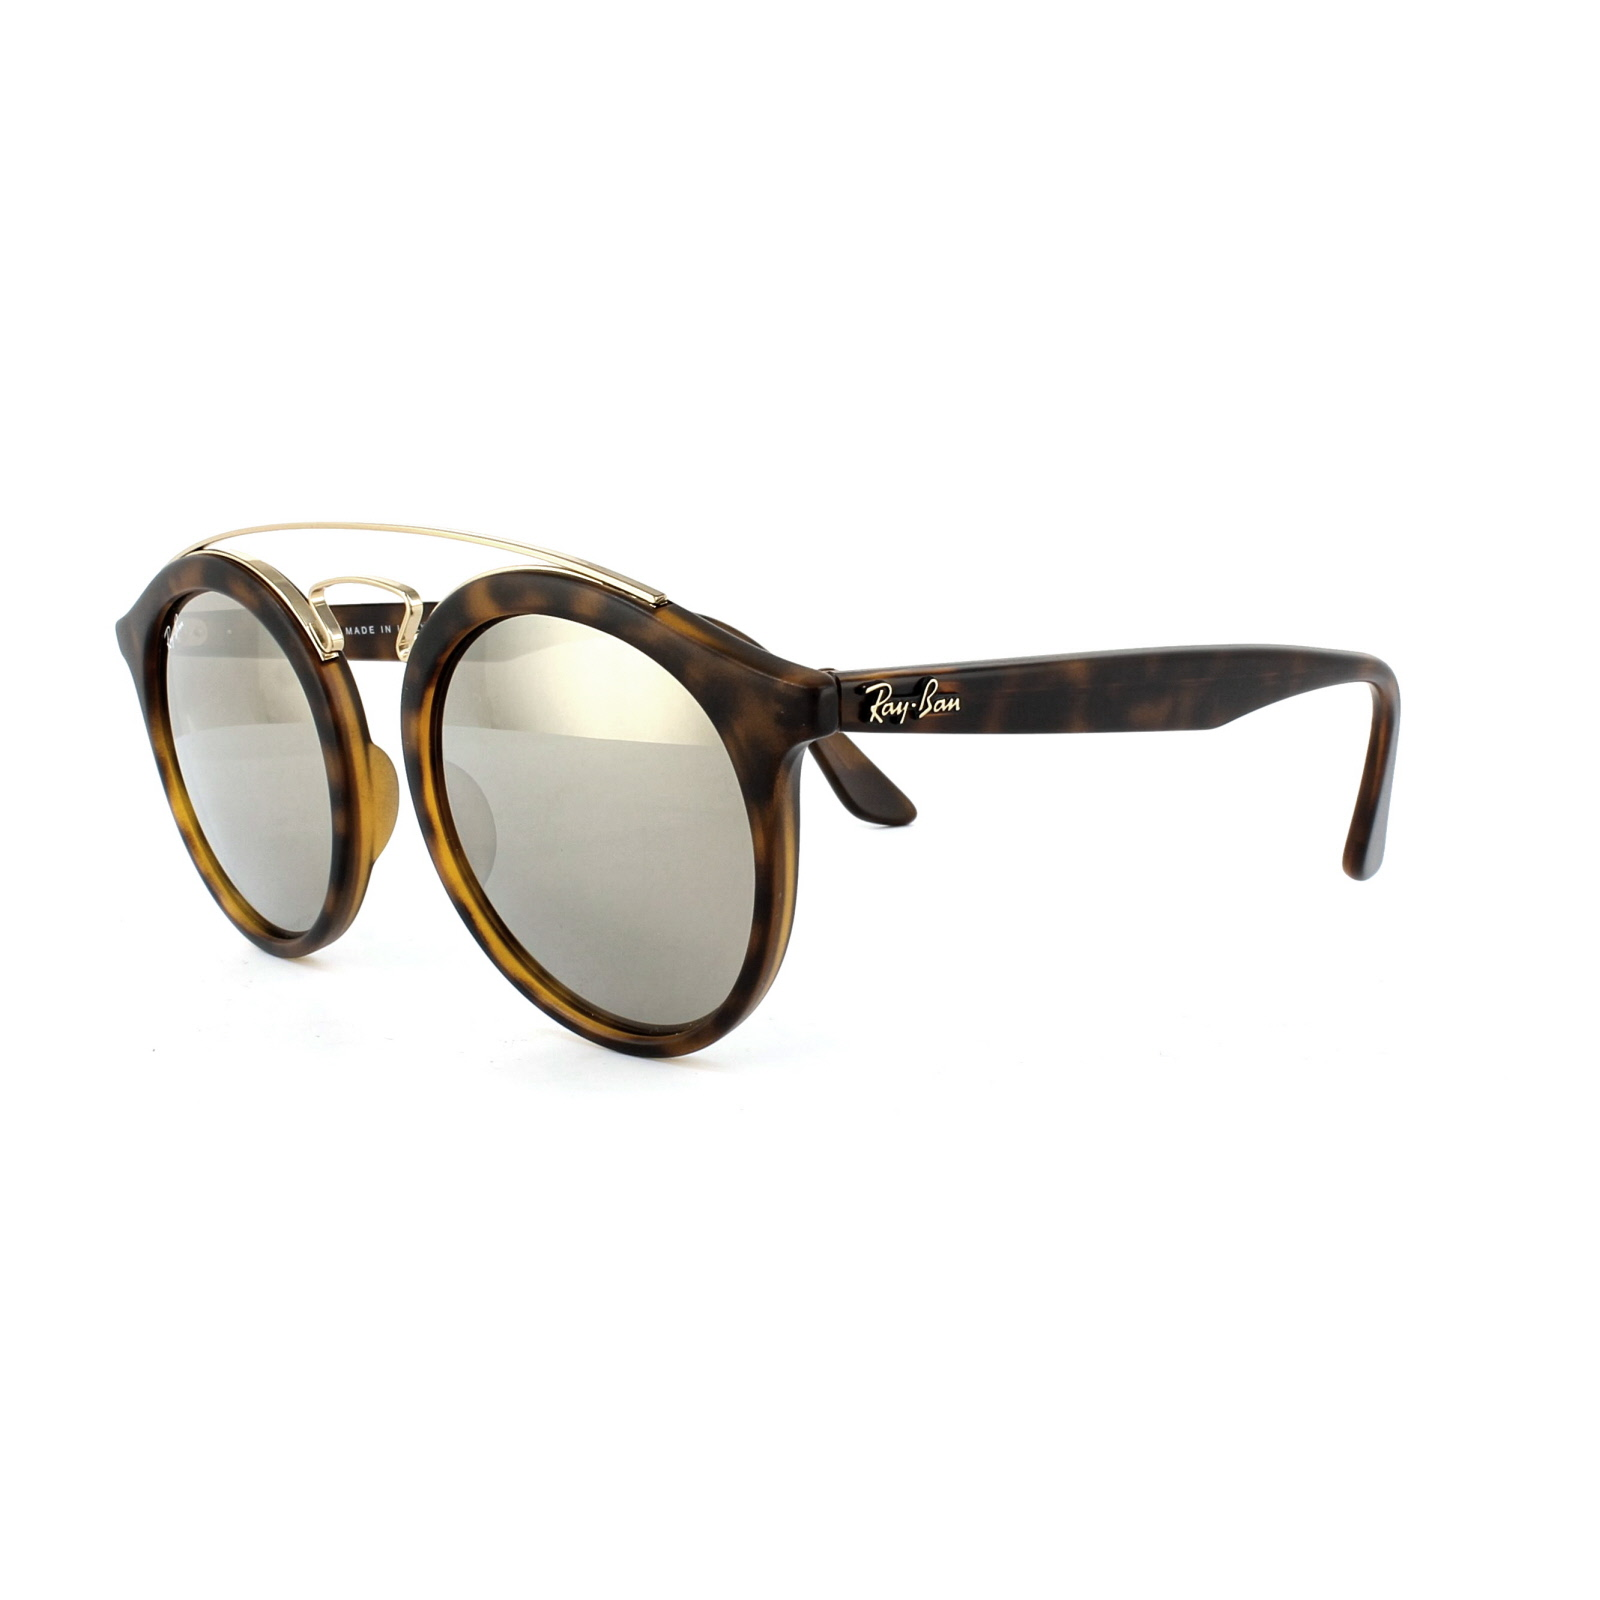 7472141e7d Ray-Ban Sunglasses Gatsby 4256 60925A Matt Havana Brown Gold Mirror ...